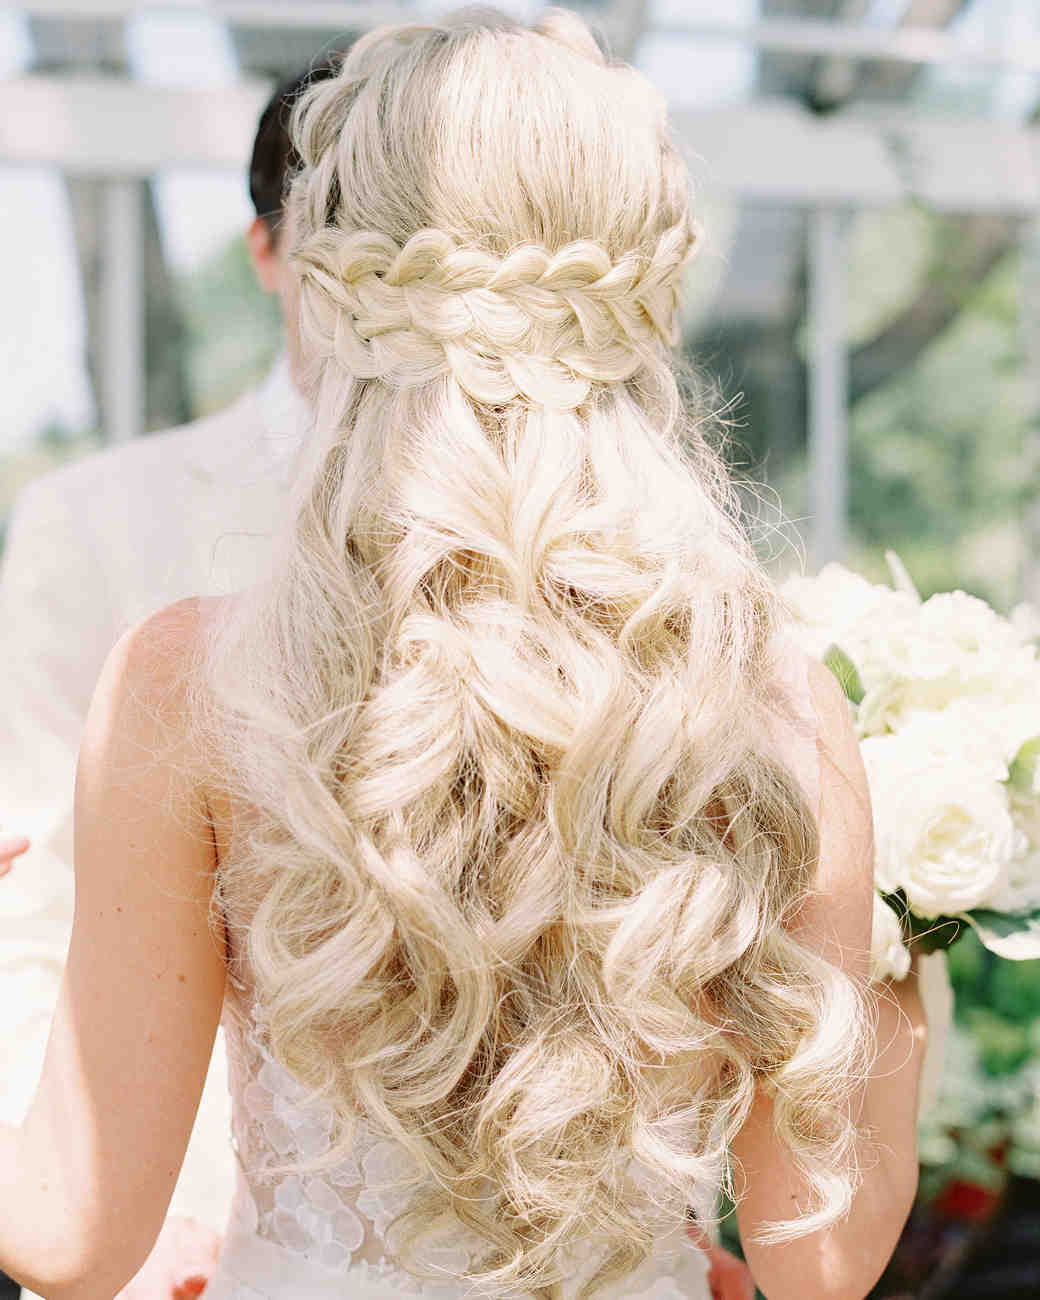 Wedding Hairstyles Down Curly: 28 Half-Up, Half-Down Wedding Hairstyles We Love